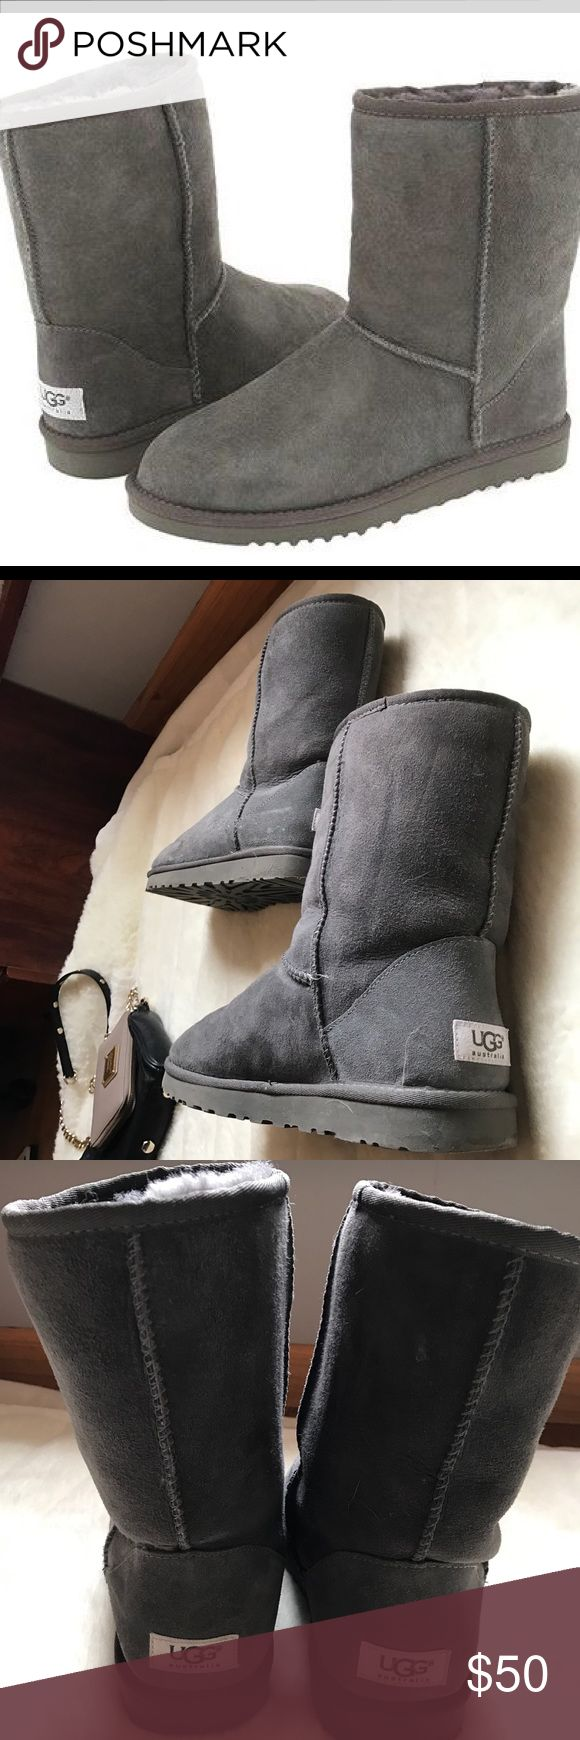 Grey UGG boots Grey UGG boots. Only worn a couple times in great condition. I will be cleaning them before shipping them just to make sure they're perfect for the new owner. UGG Shoes Winter & Rain Boots